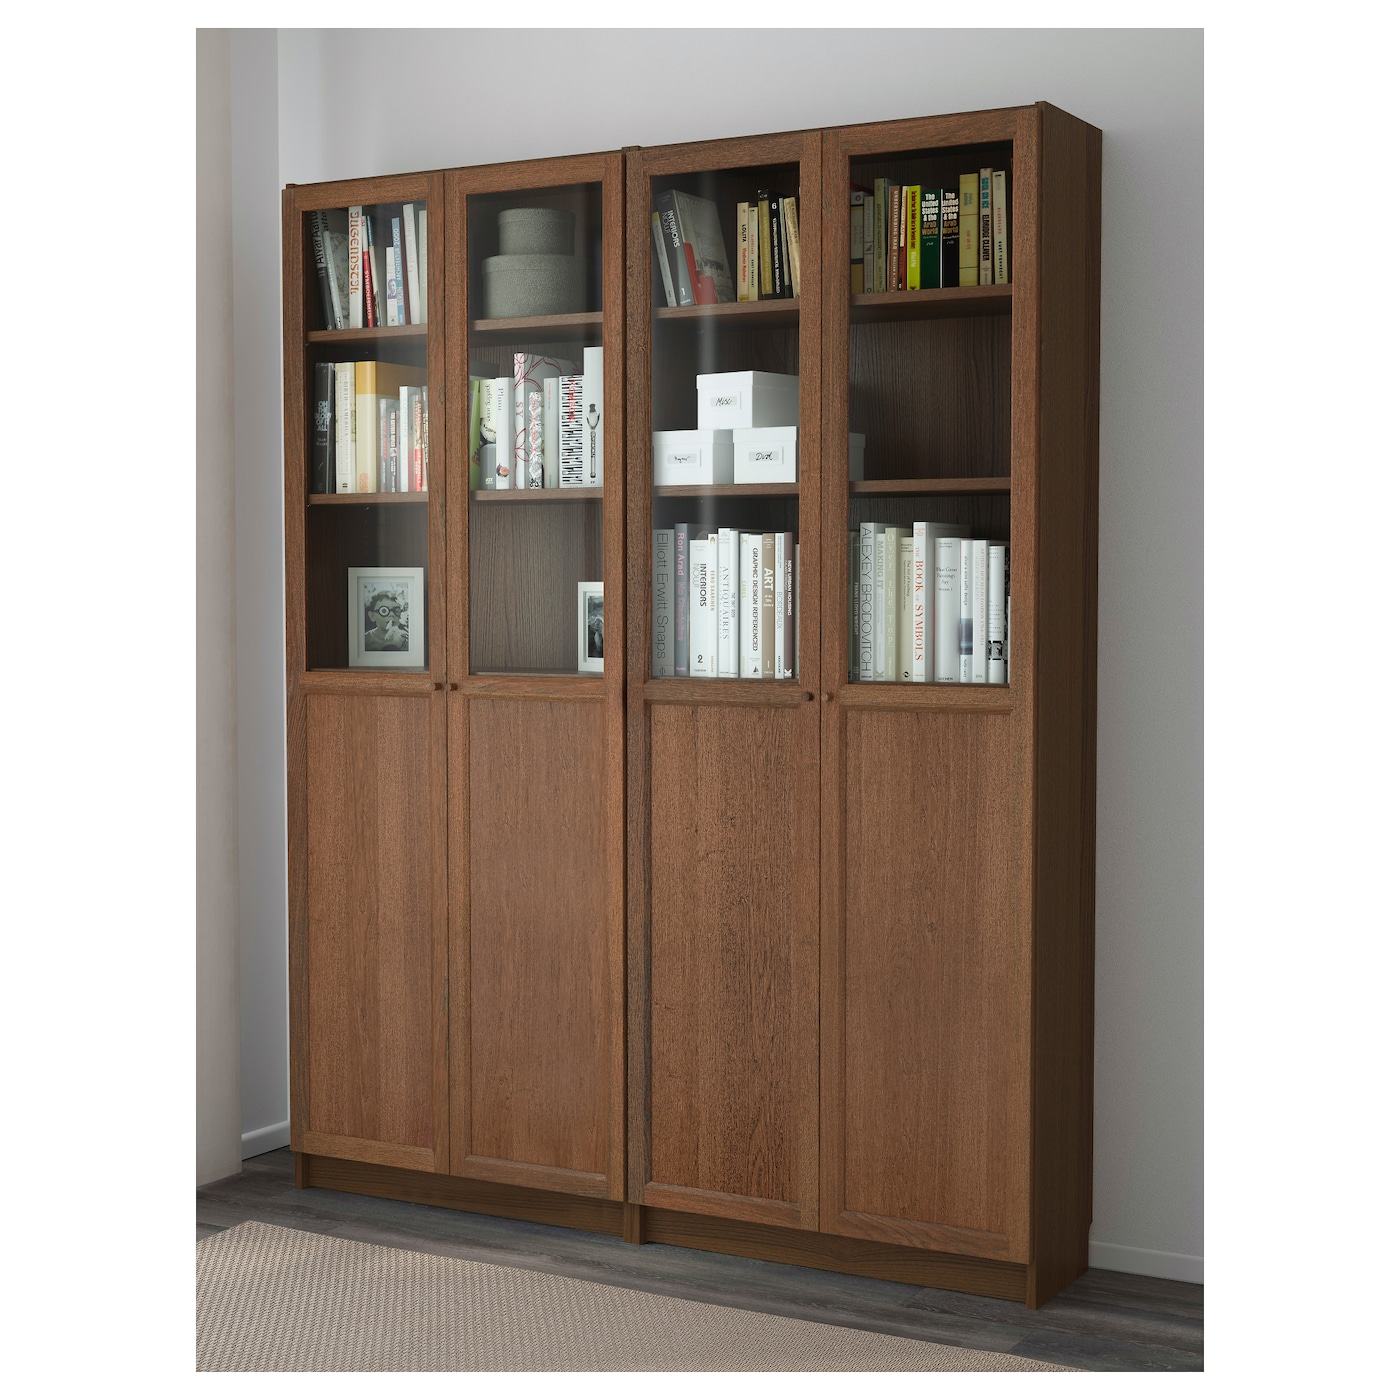 Billy oxberg bookcase brown ash veneer 160x202x30 cm ikea - Ikea billy porte vitree ...